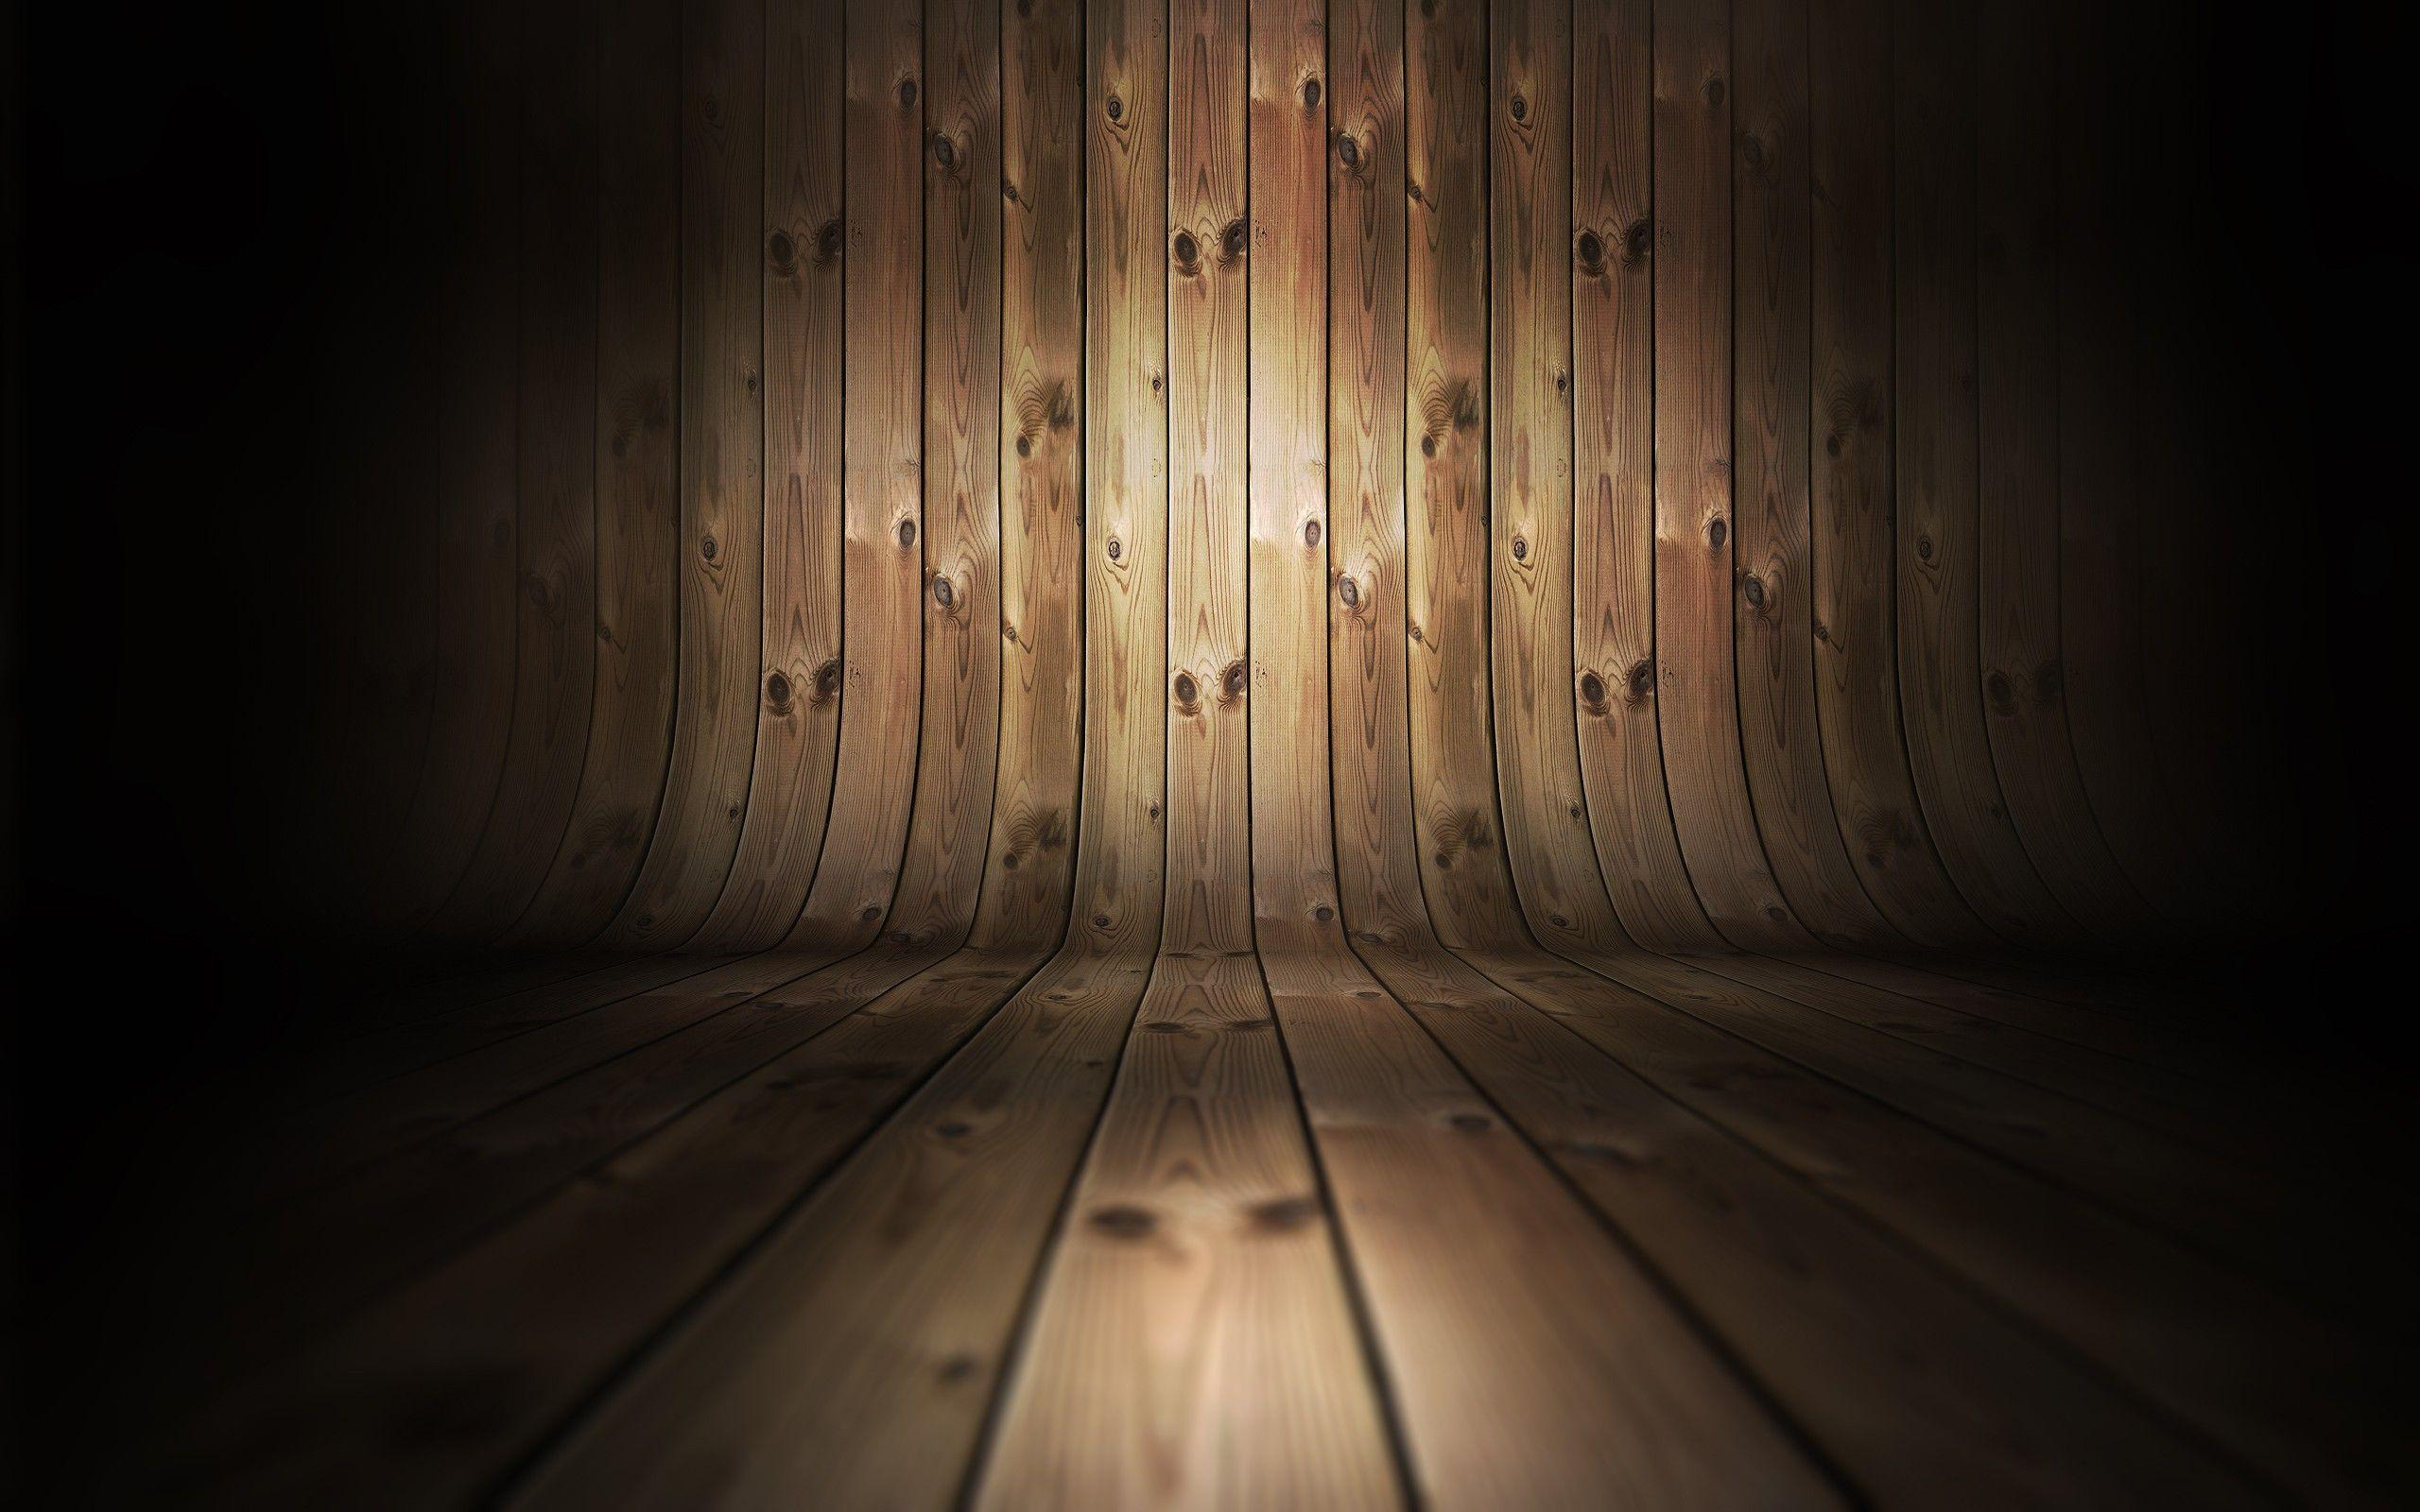 3d wallpaper wood floor - photo #27